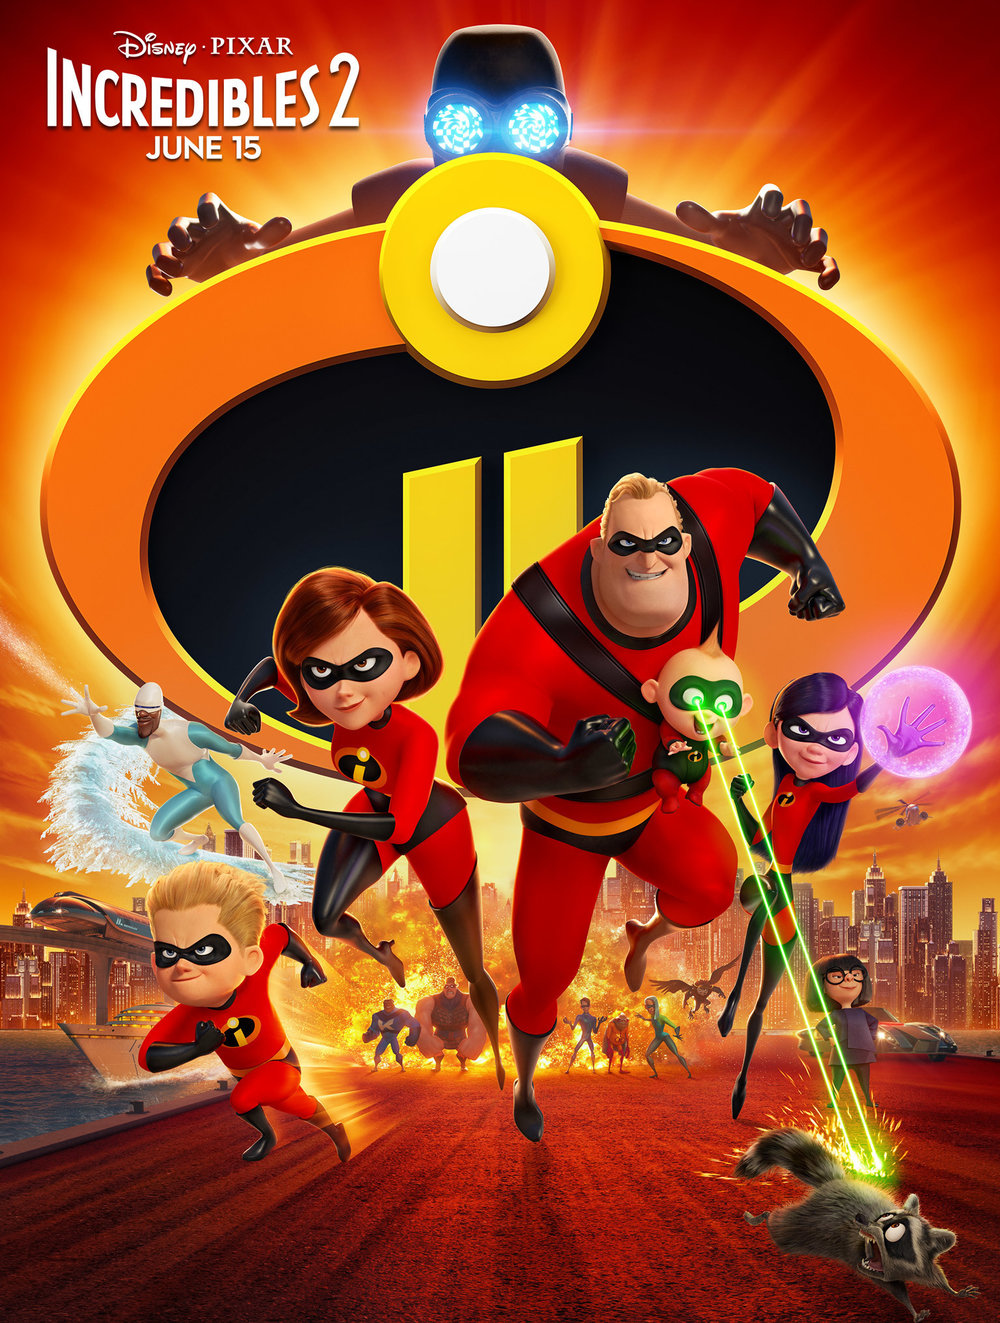 r_theincredibles2_header_e017131b.jpeg